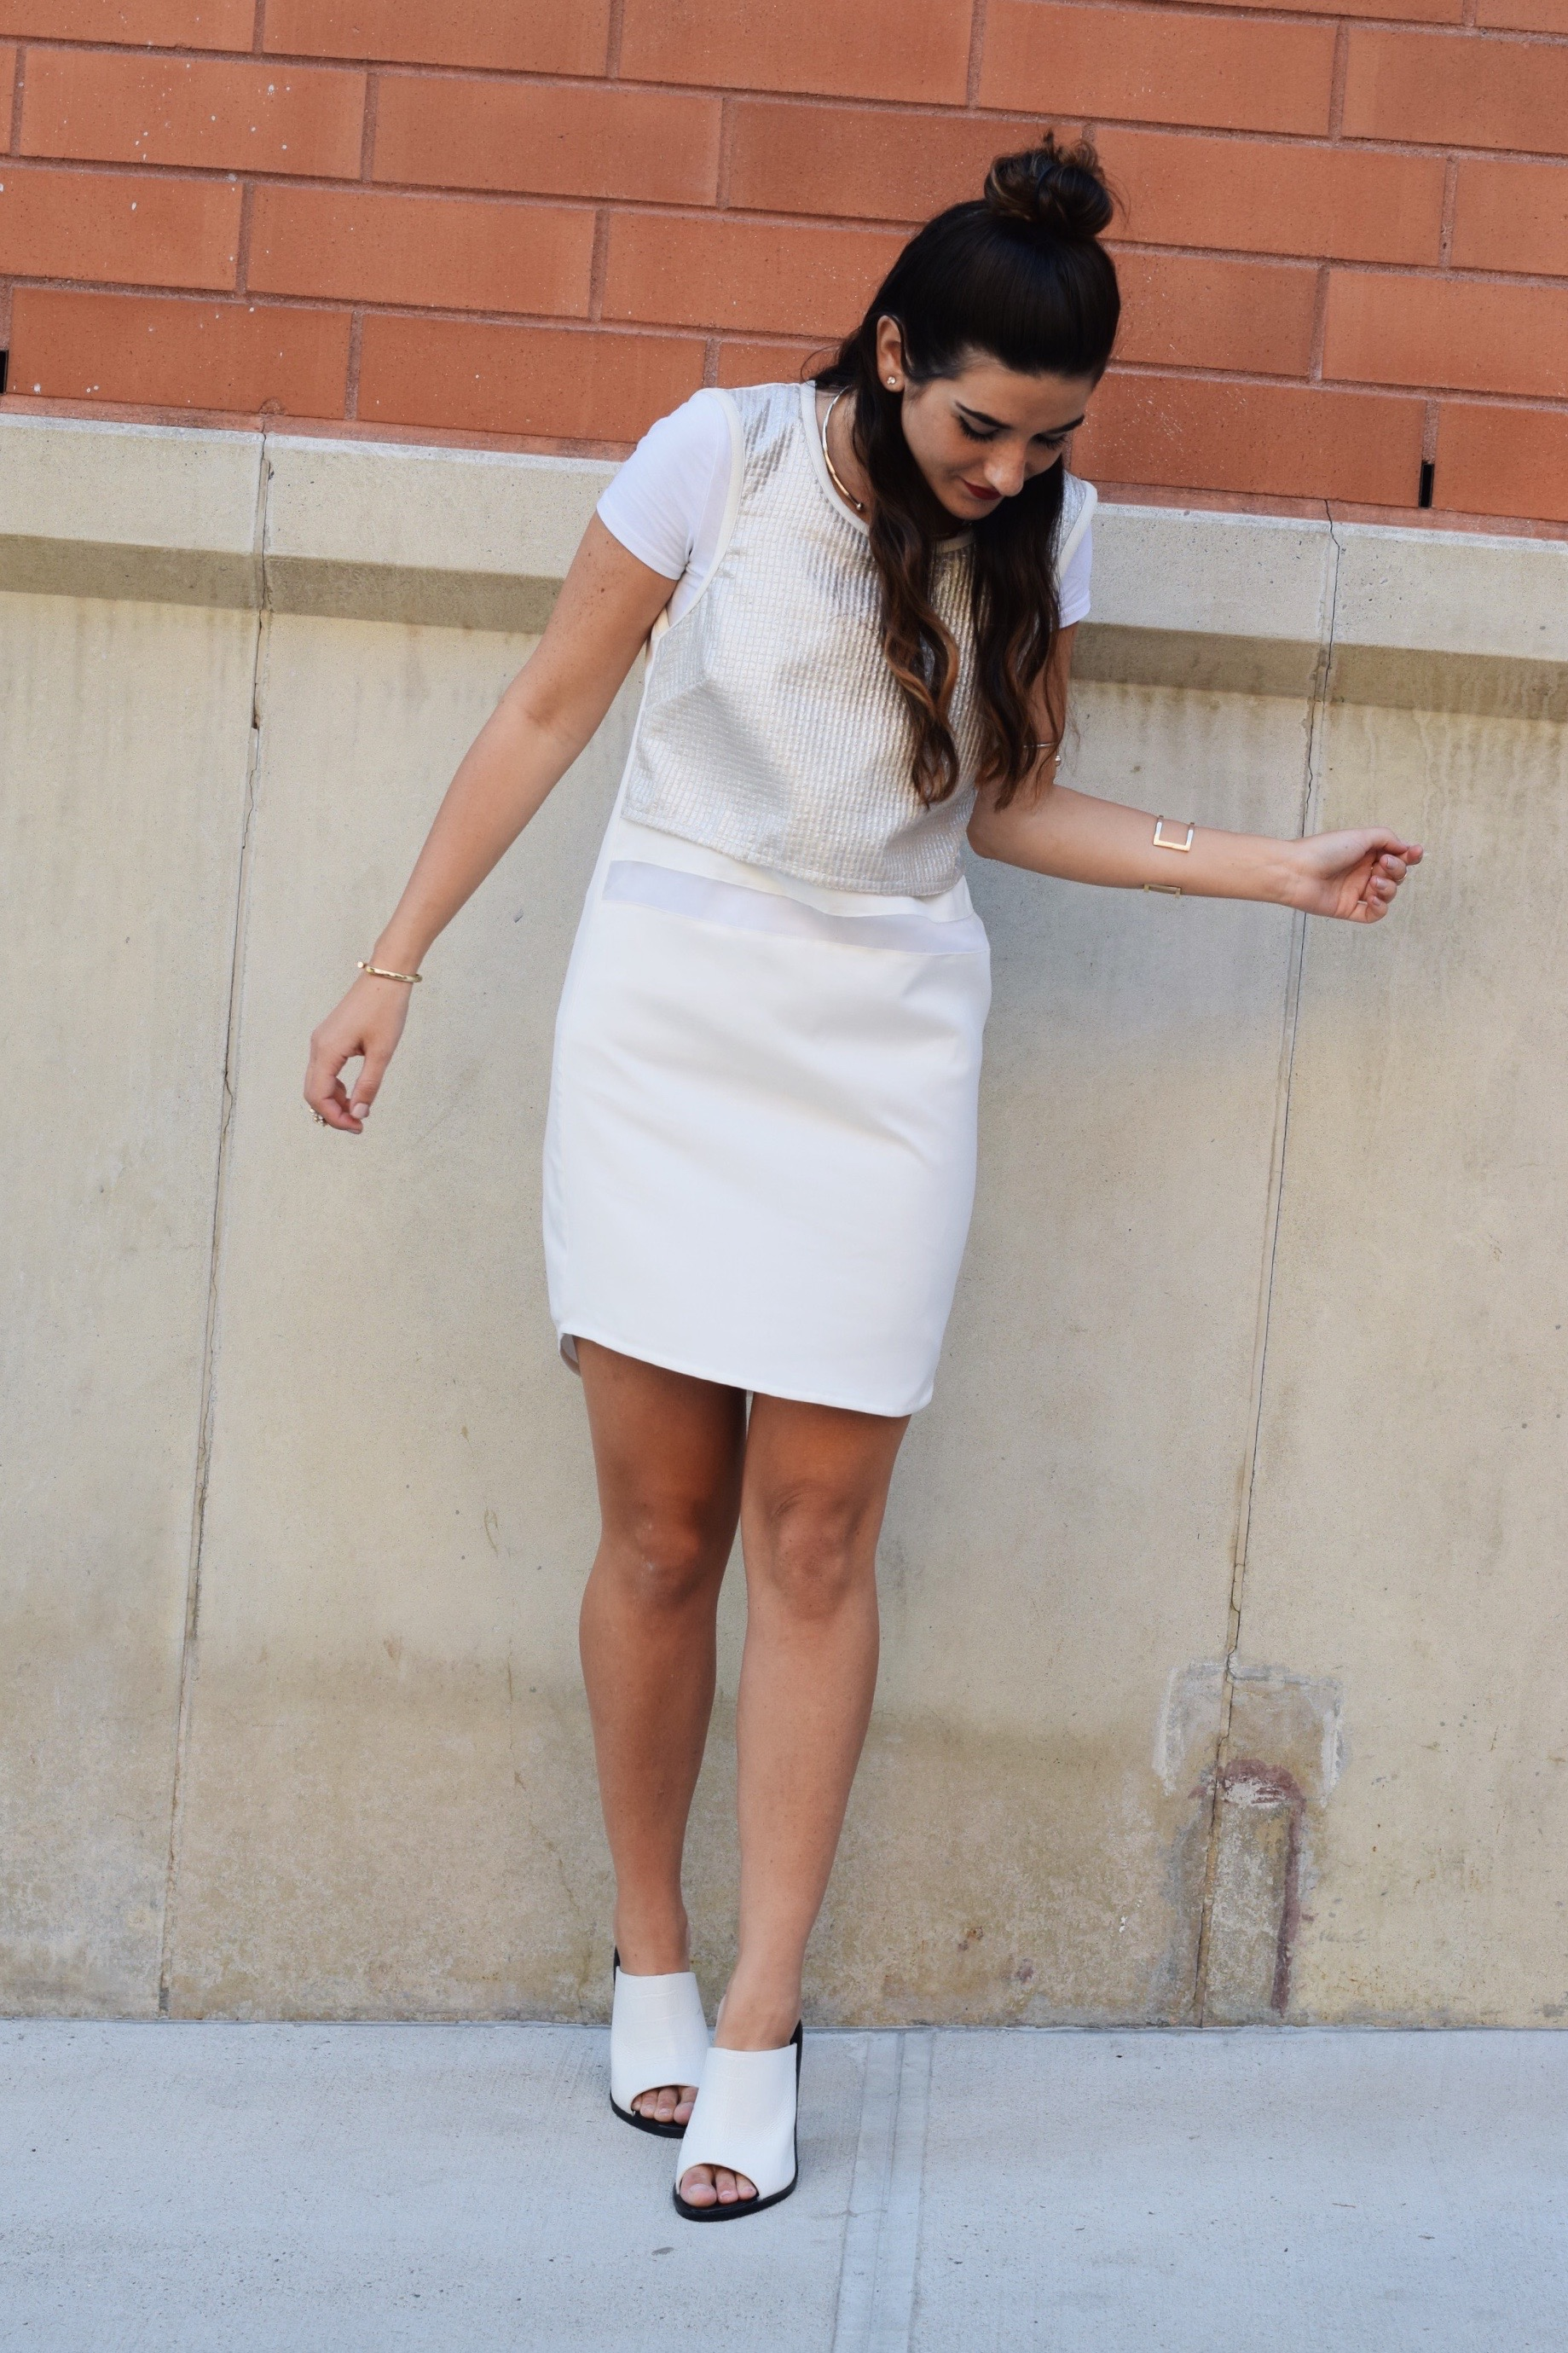 All White Look Gold Jewelry Louboutins & Love Fashion Blog Esther Santer Street Style NYC Blogger Lydell NYC Lumier Bariano Red Light PR Collab IfChic Mod Mules Topknot Hair Girl Model Photoshoot Collar Necklace Bracelet Dress OOTD Outfit Summer Shoes.jpg